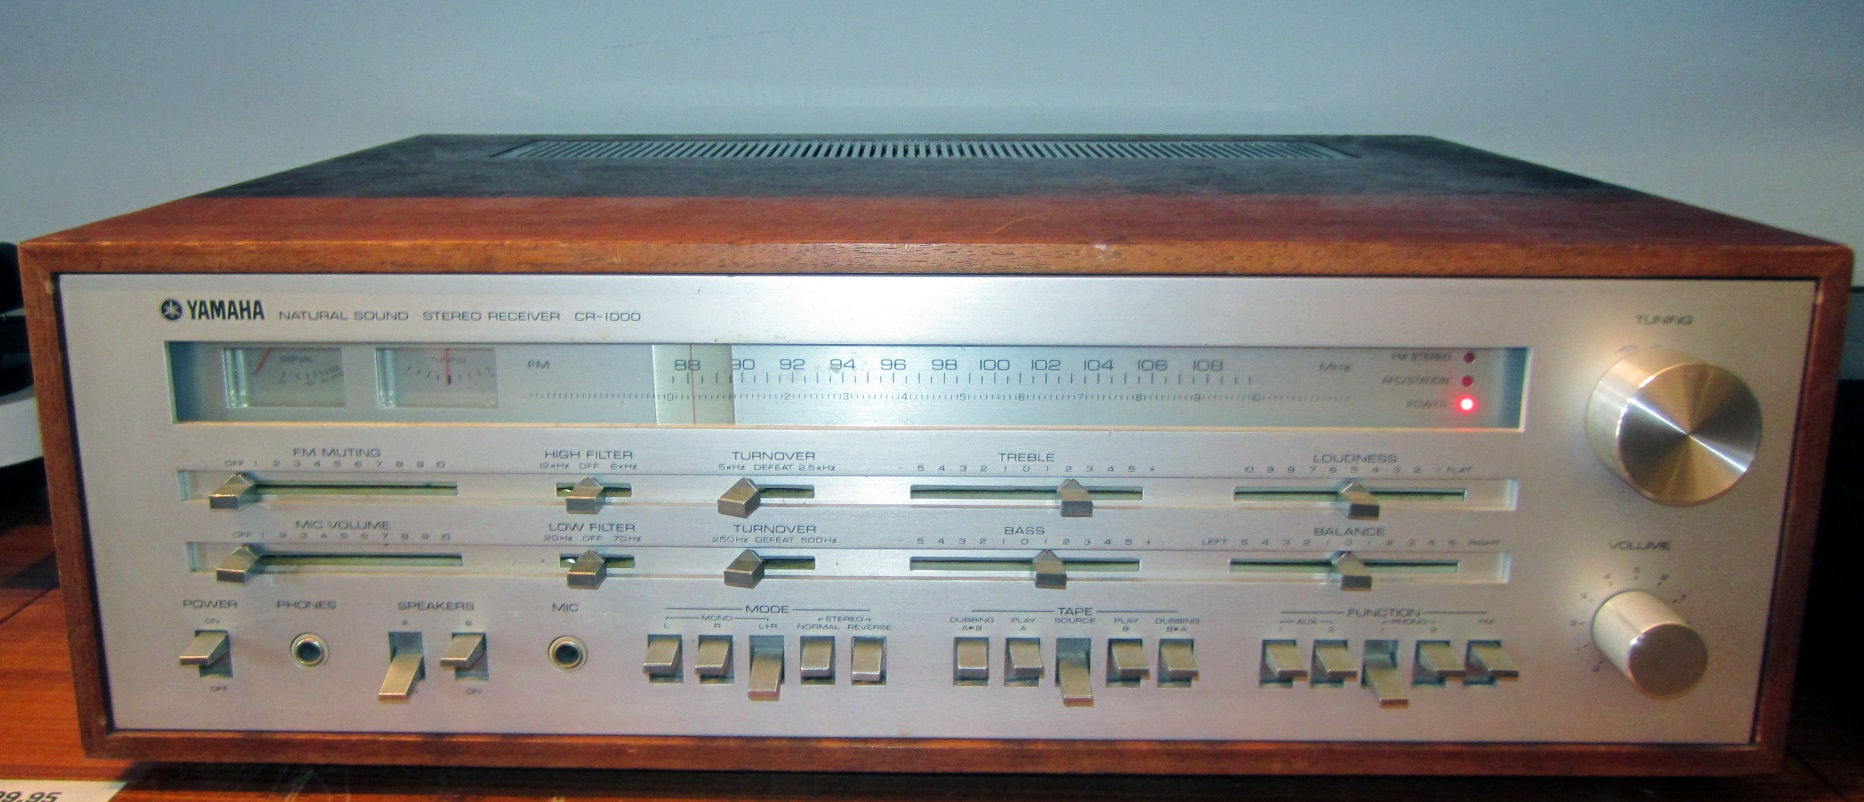 Sold Yamaha Cr 1000 Stereo Receiver Backbeat Books And